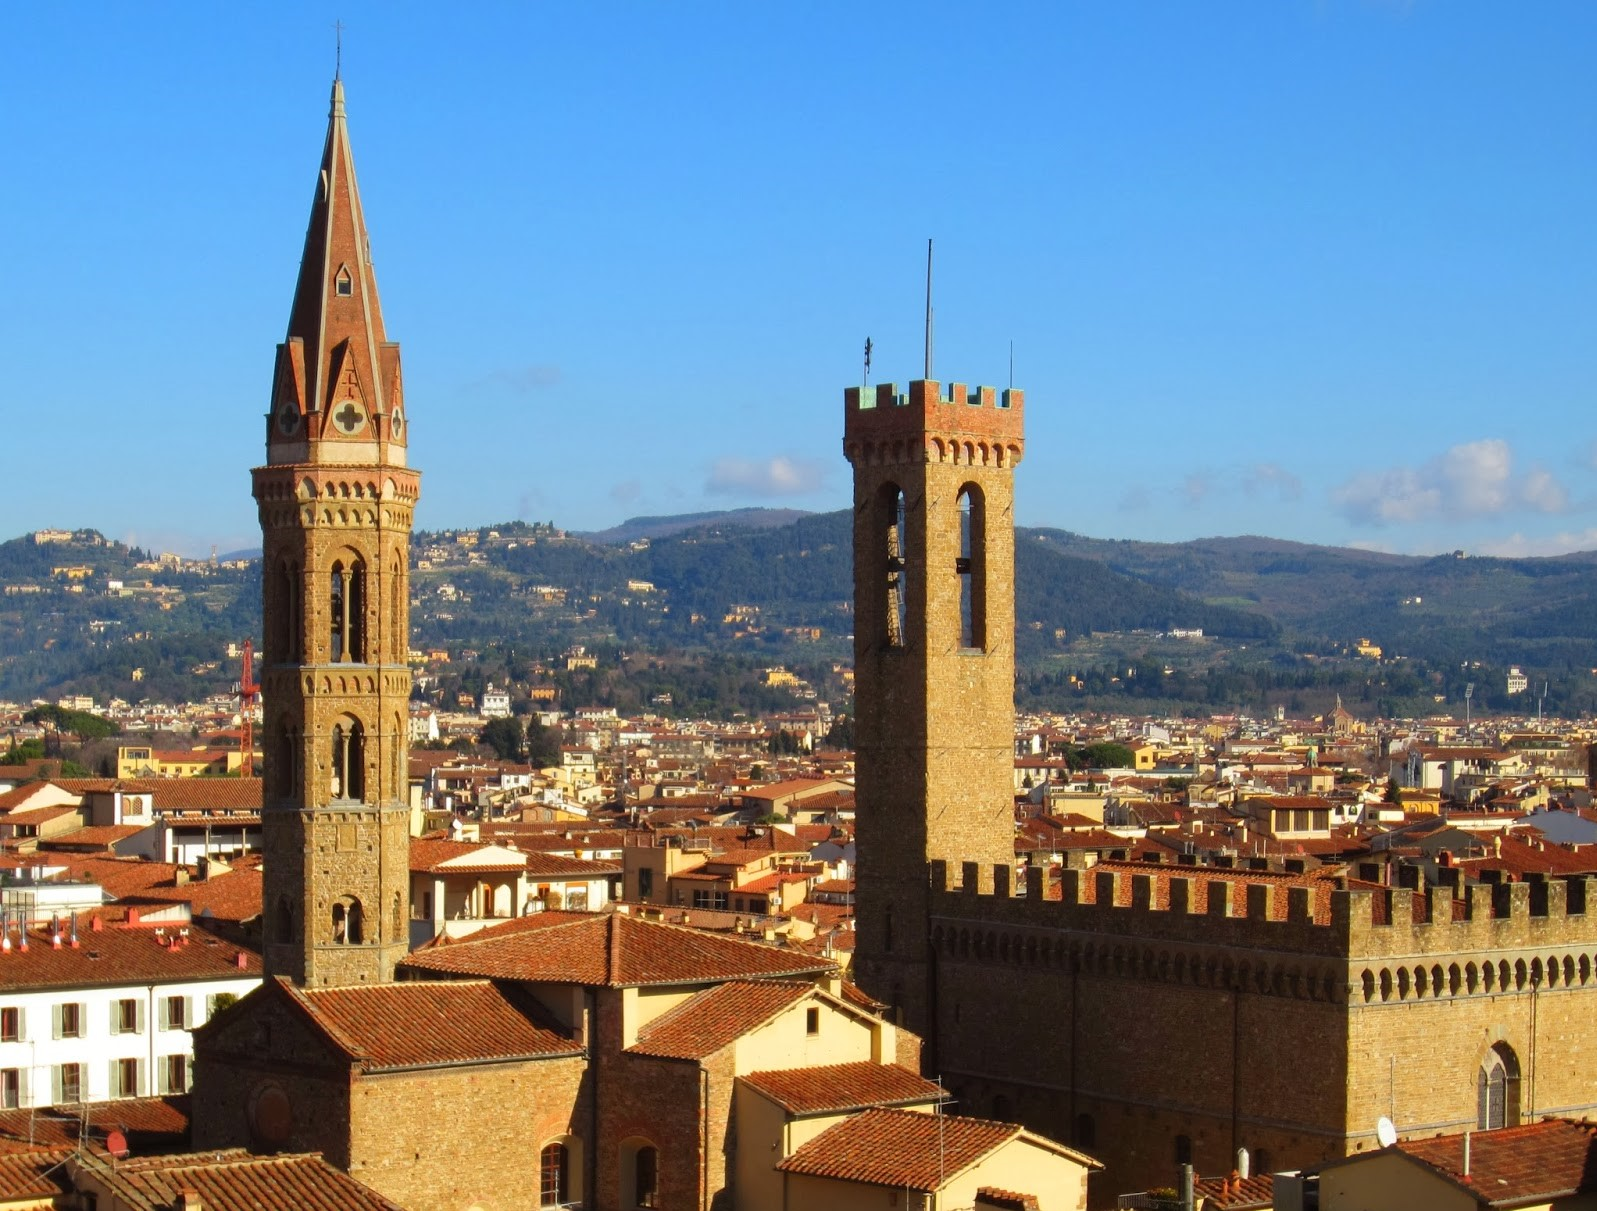 badia-tower-and-bargello-palace